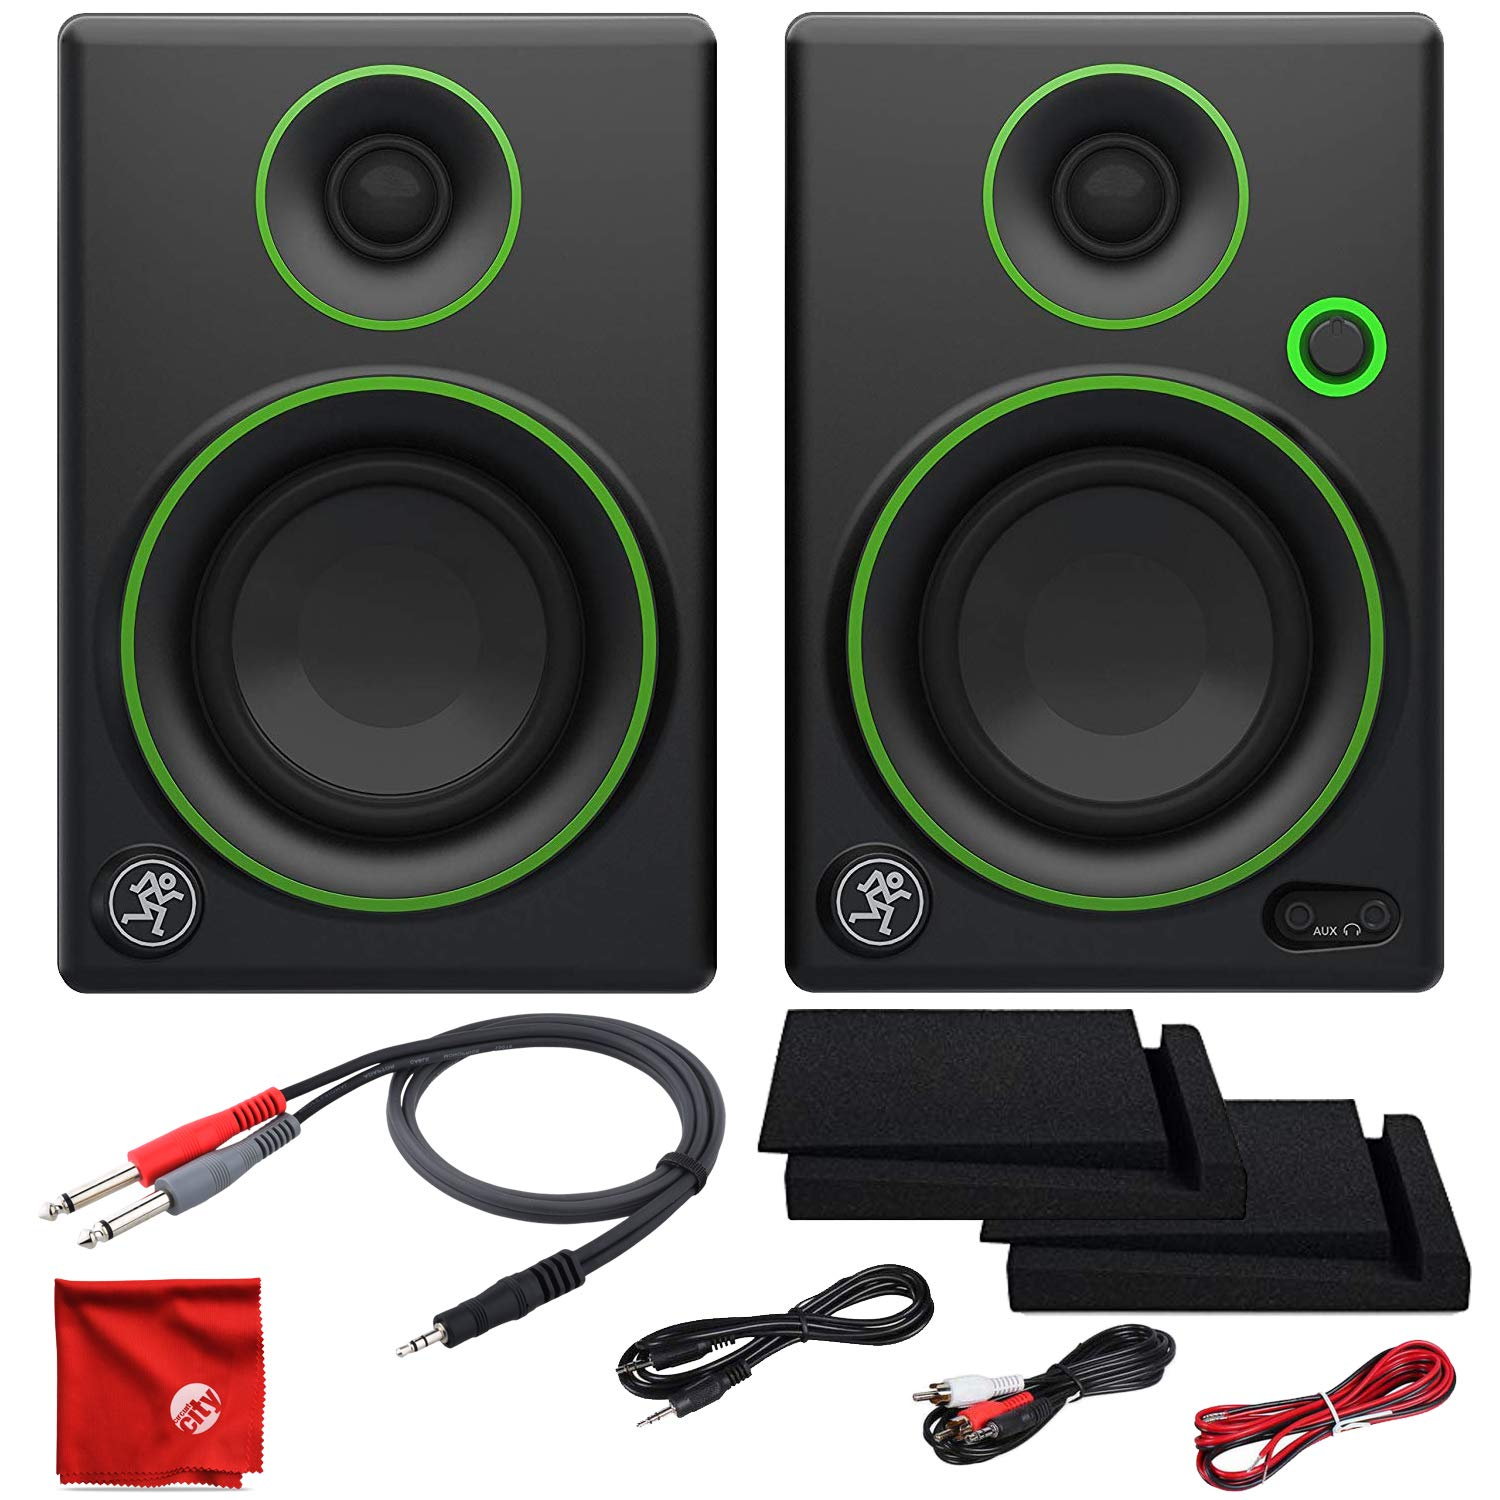 Mackie CR3 3-Inch Creative Reference Multimedia Monitors Bundle with Foam Isolation Pads and Pro Cable Kit by Circuit City